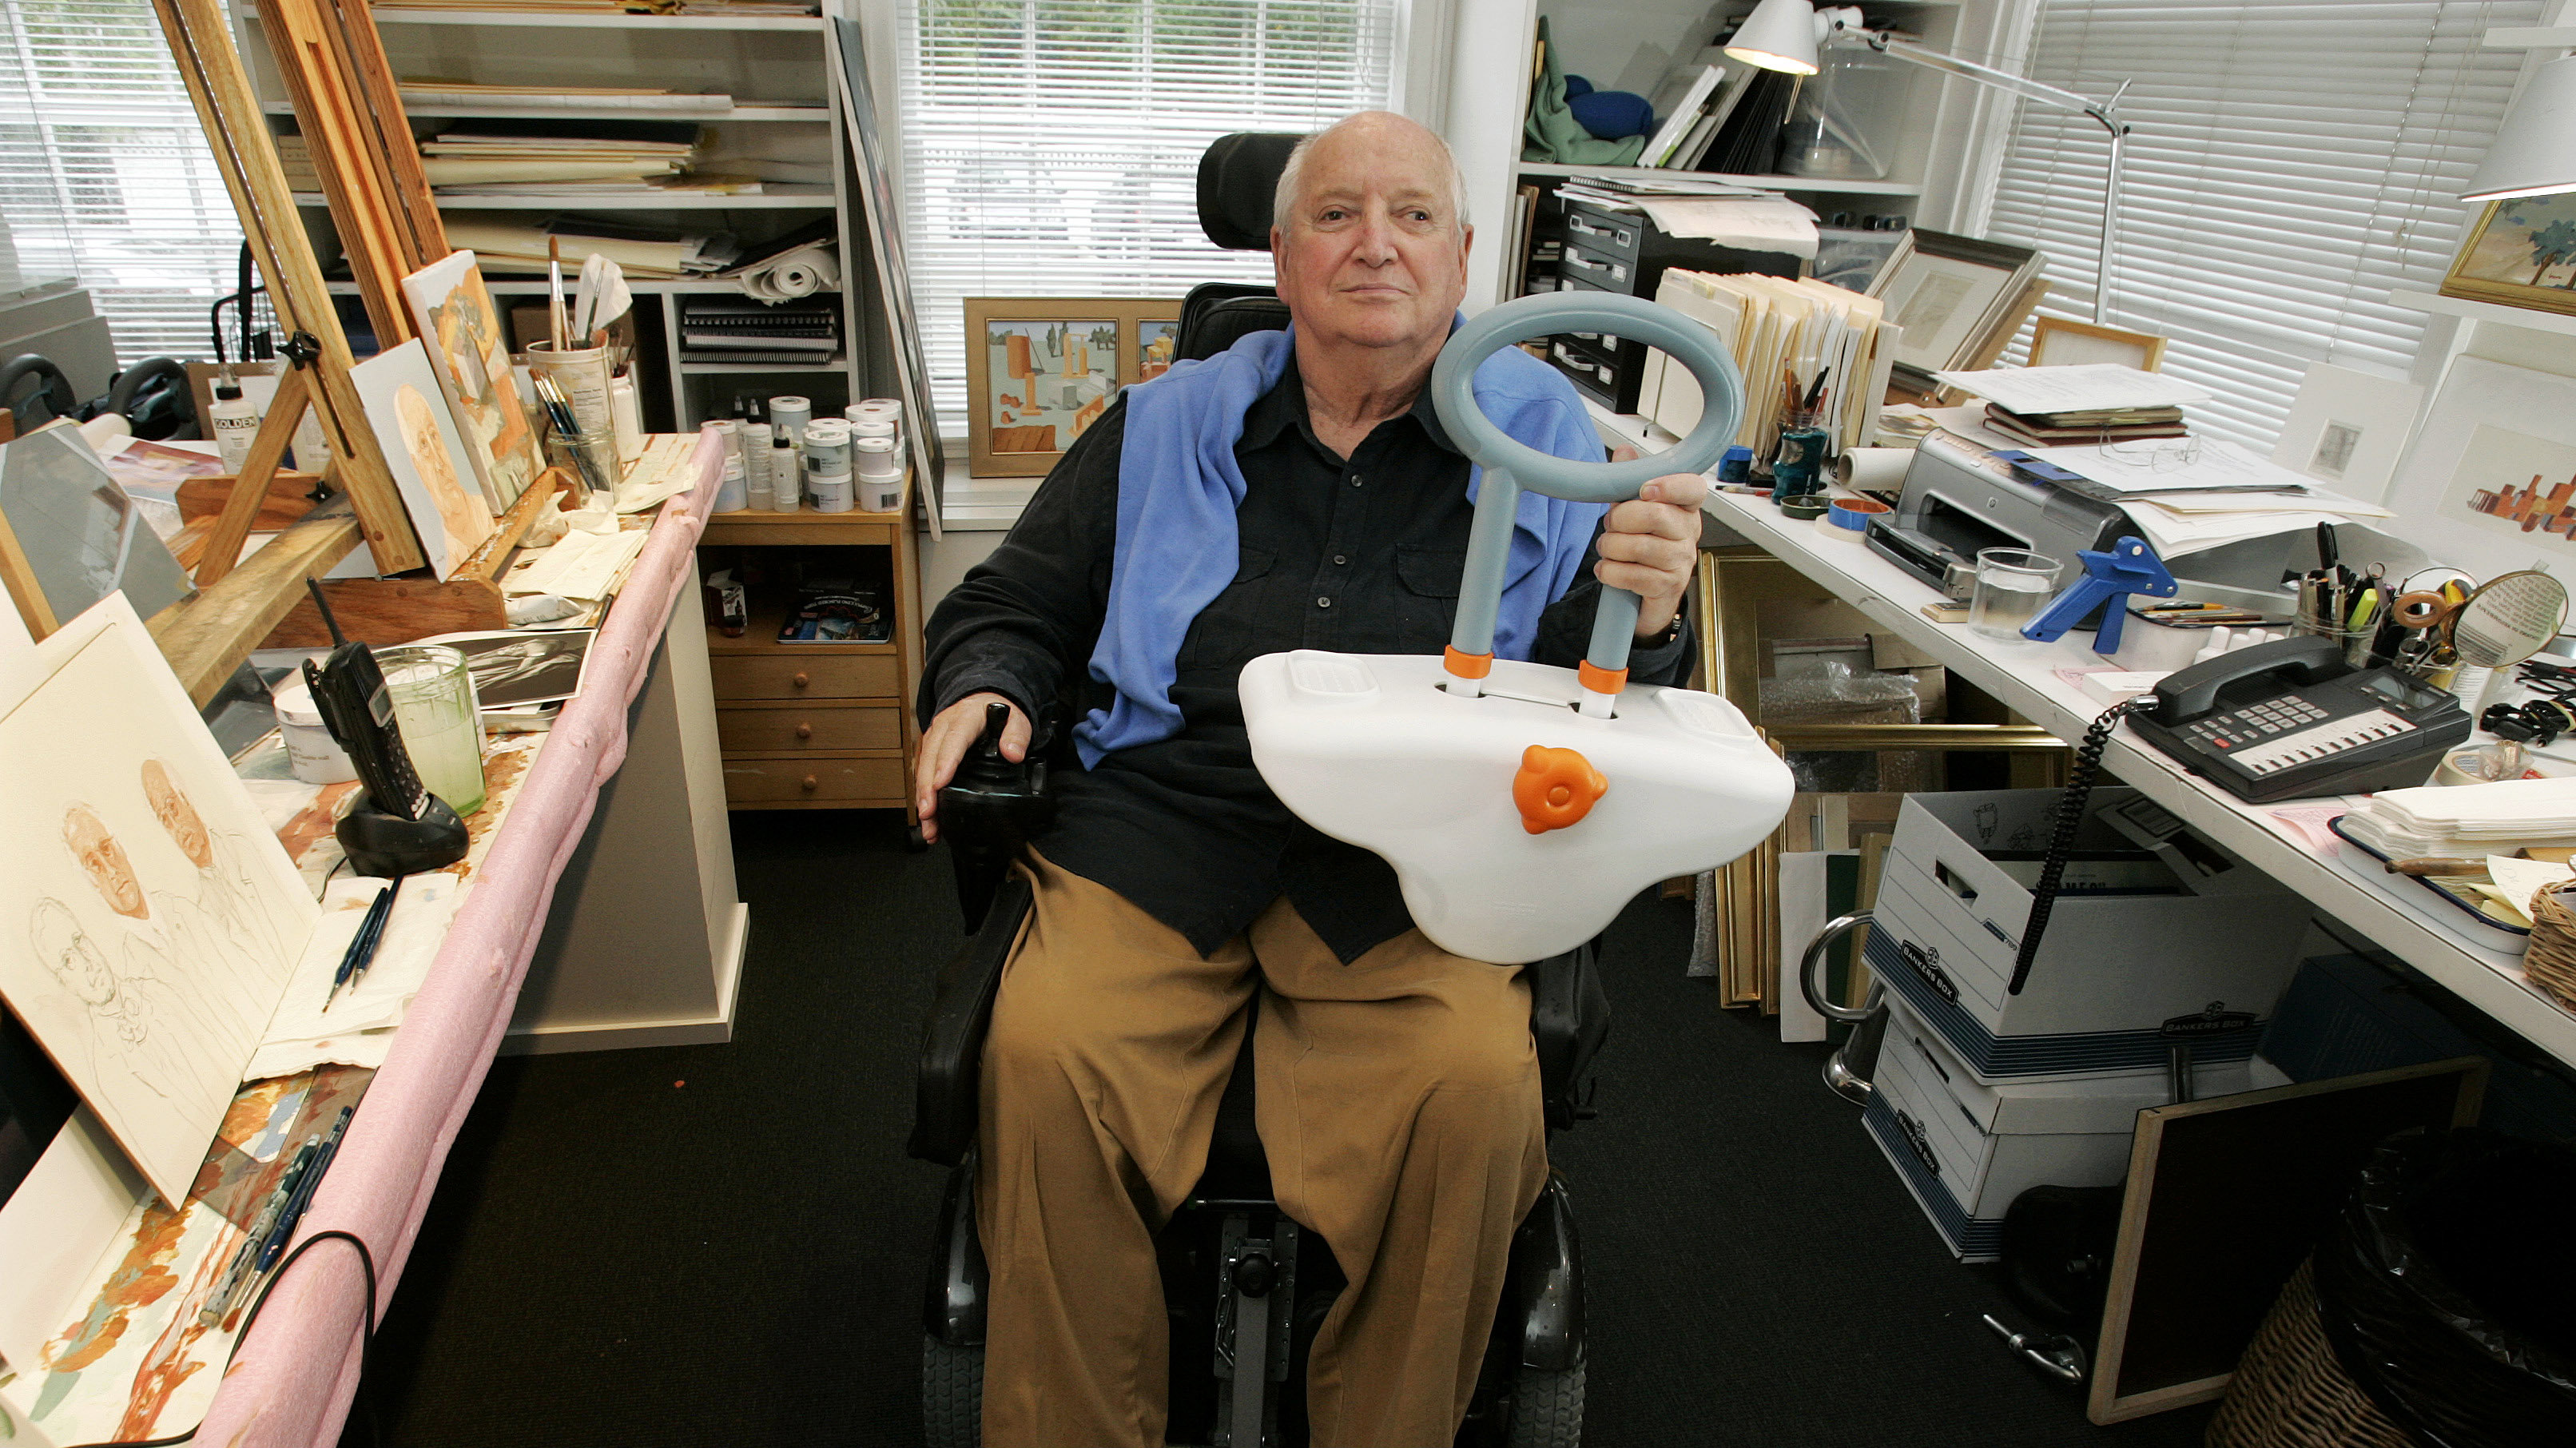 Architect and designer Michael Graves sits in his studio Friday, Sept. 11, 2009, in Princeton, N.J., as he holds a bathtub handle he designed to help the handicapped and elderly.